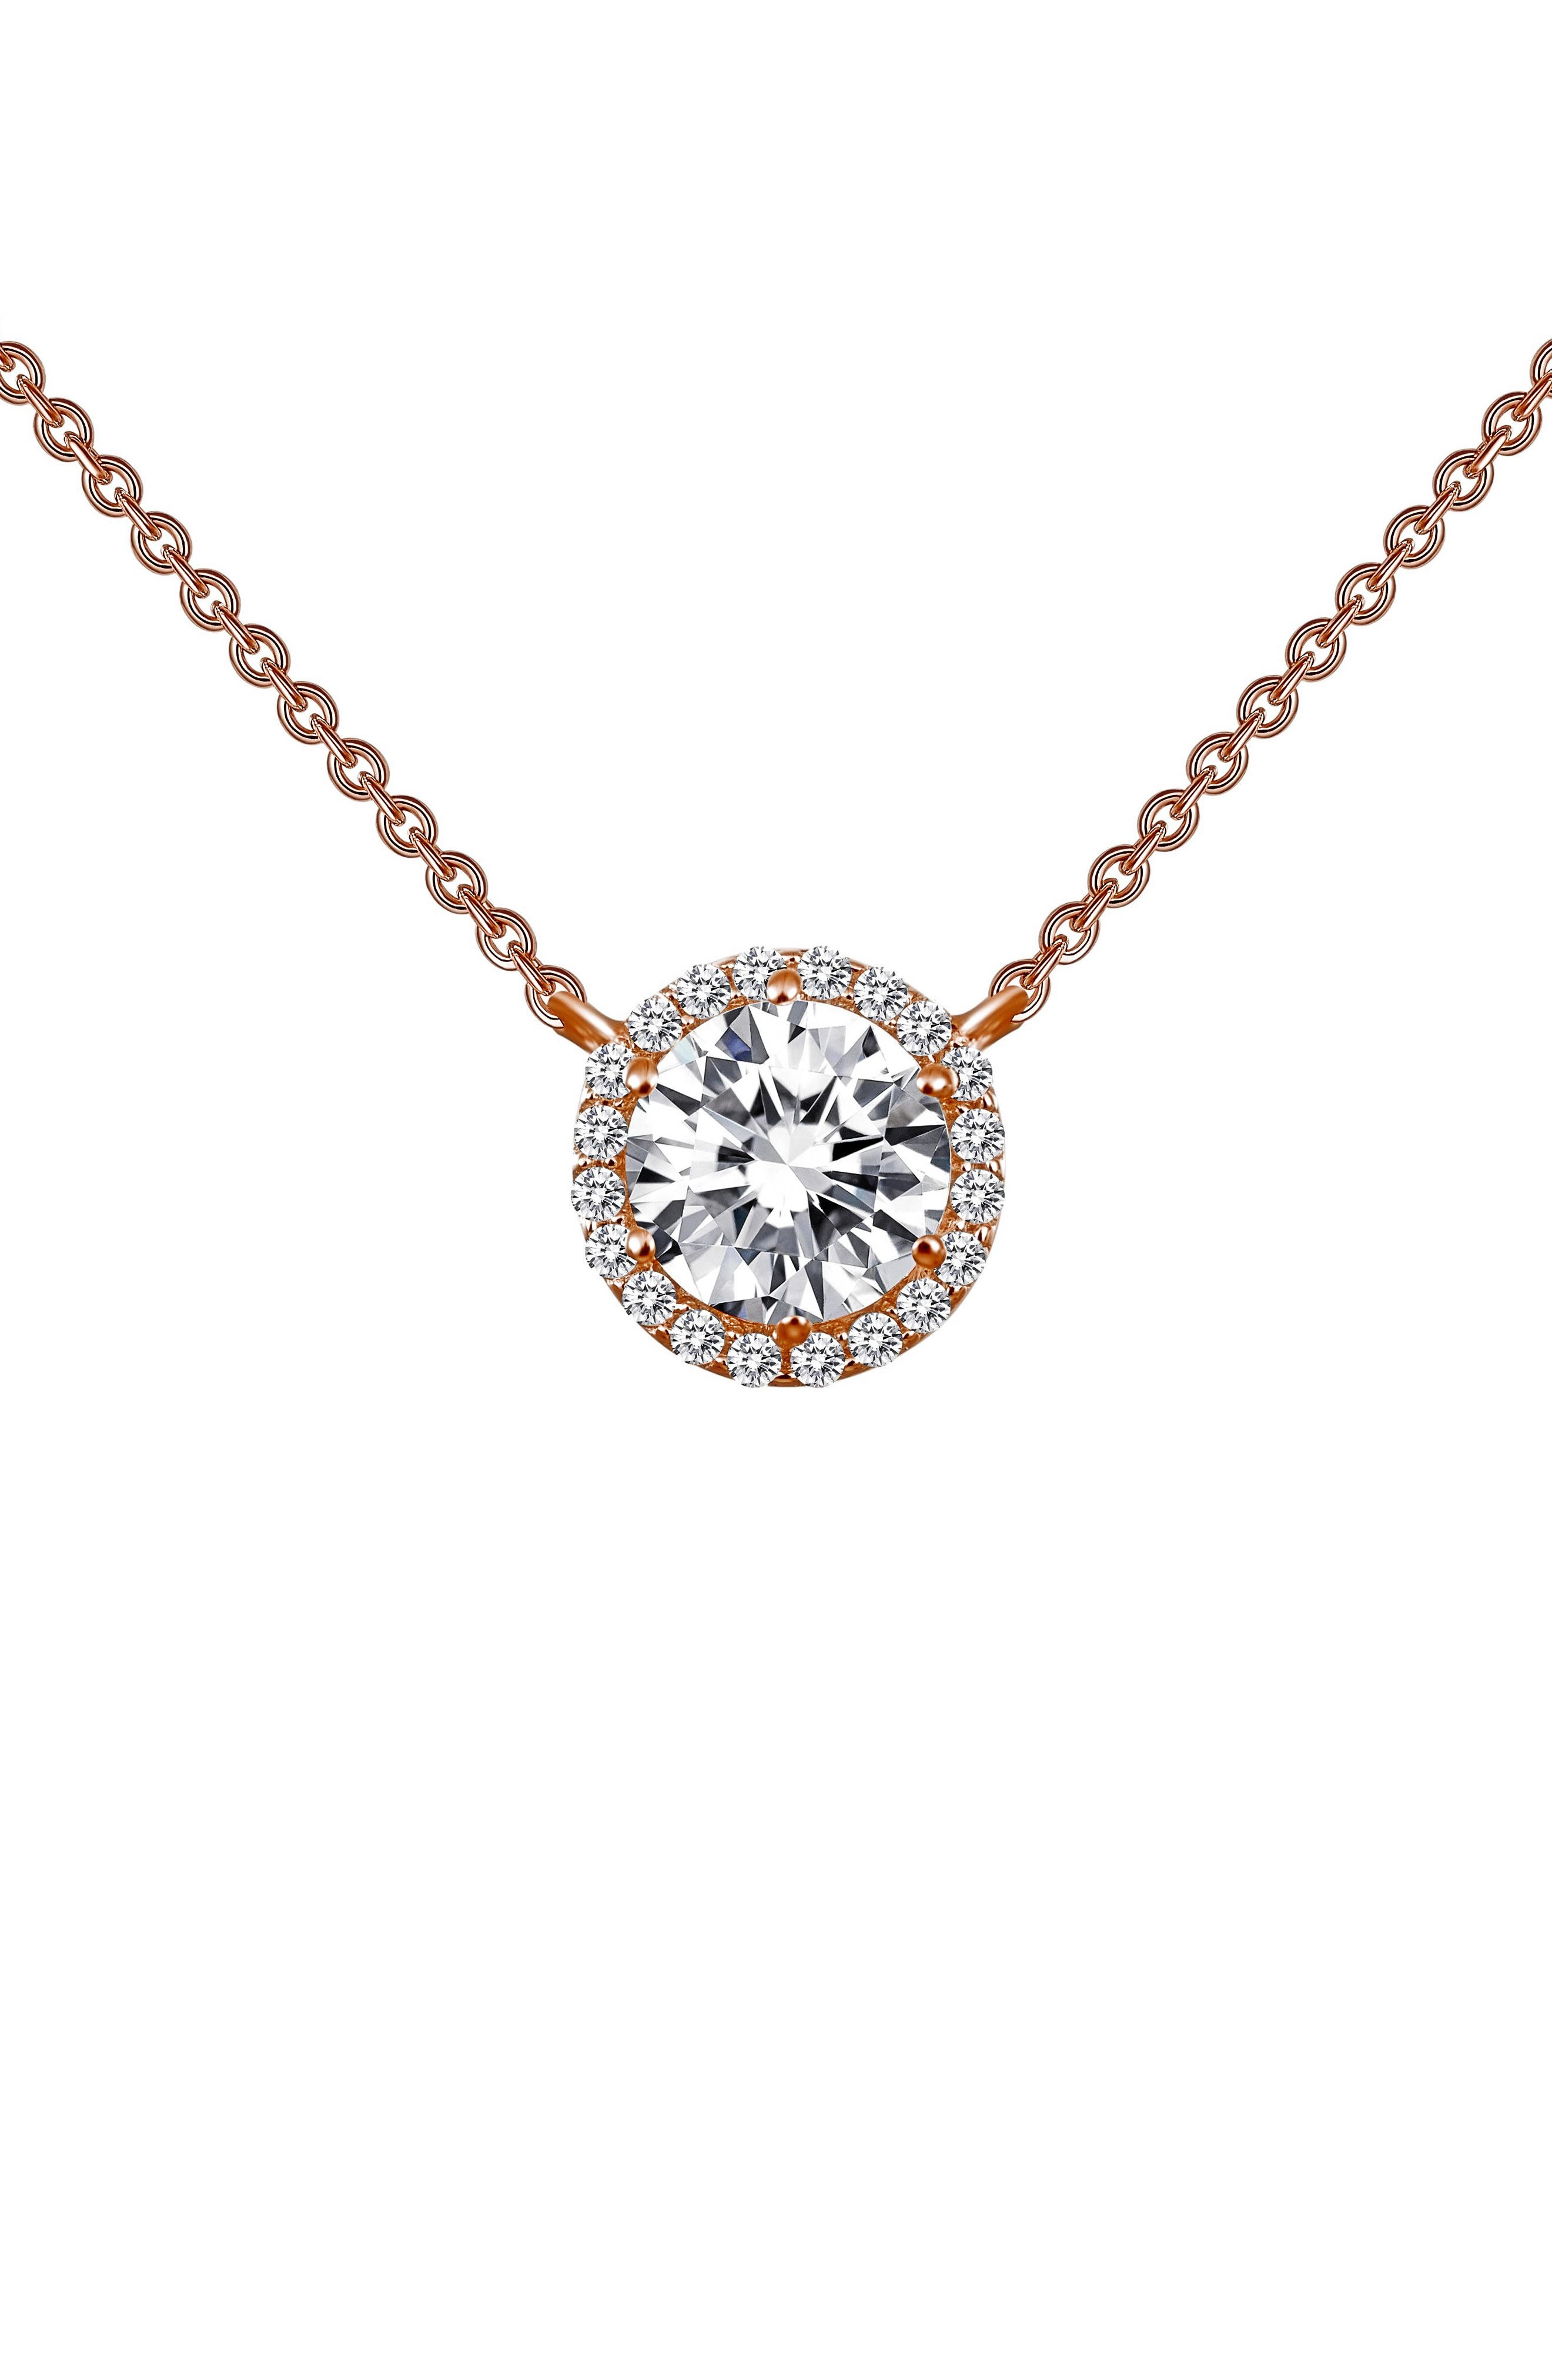 A halo of glittering simulated diamonds surrounds a stunning central stone in a timeless pendant necklace that adds elegant sparkle to any outfit. Style Name: Lafonn \\\'Lassaire\\\' Halo Pendant Necklace. Style Number: 5025410. Available in stores.